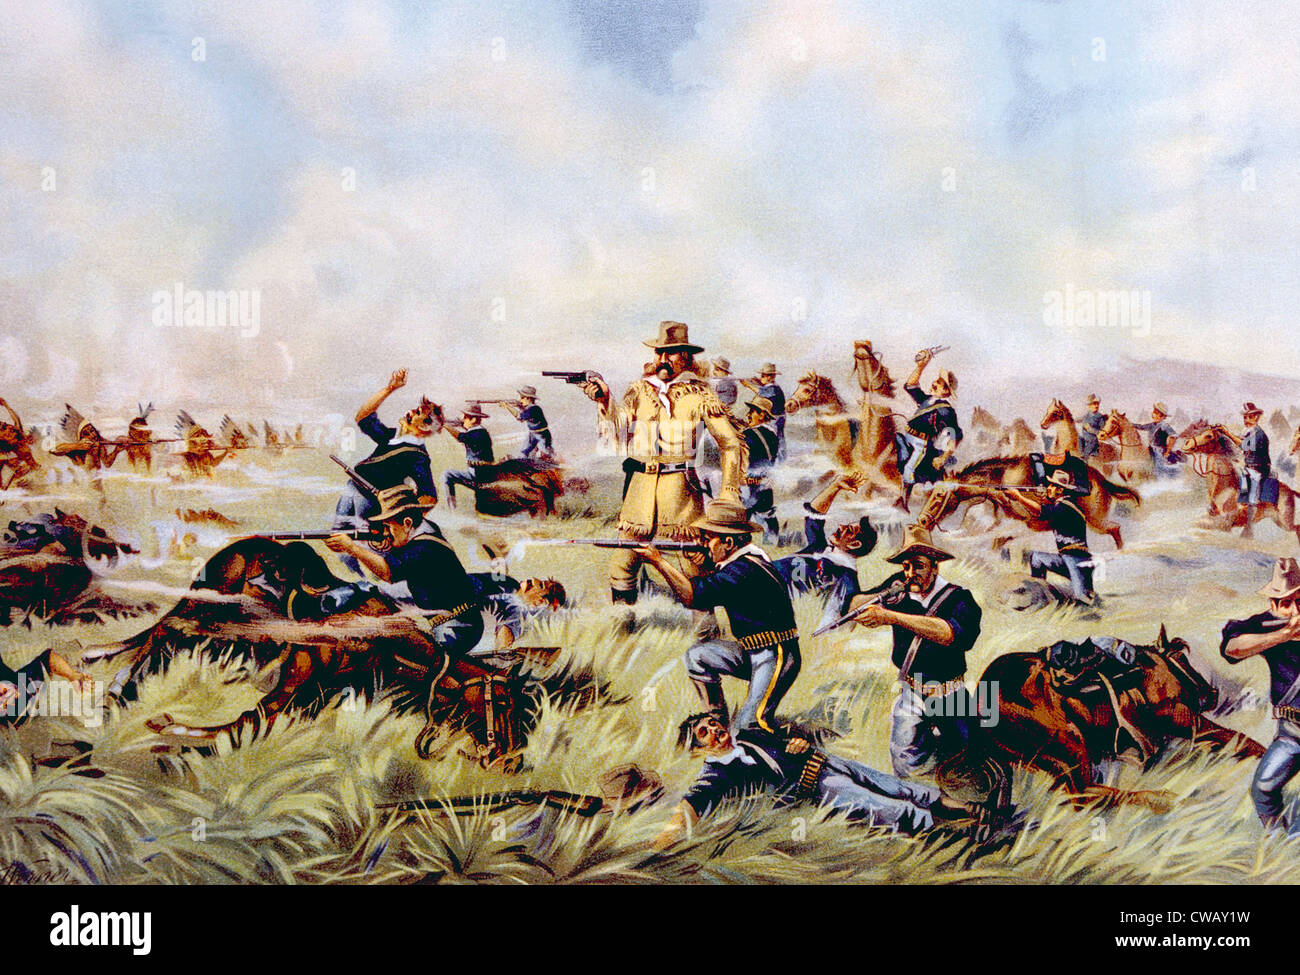 The Last Stand Custer Sitting Bull and the Battle of